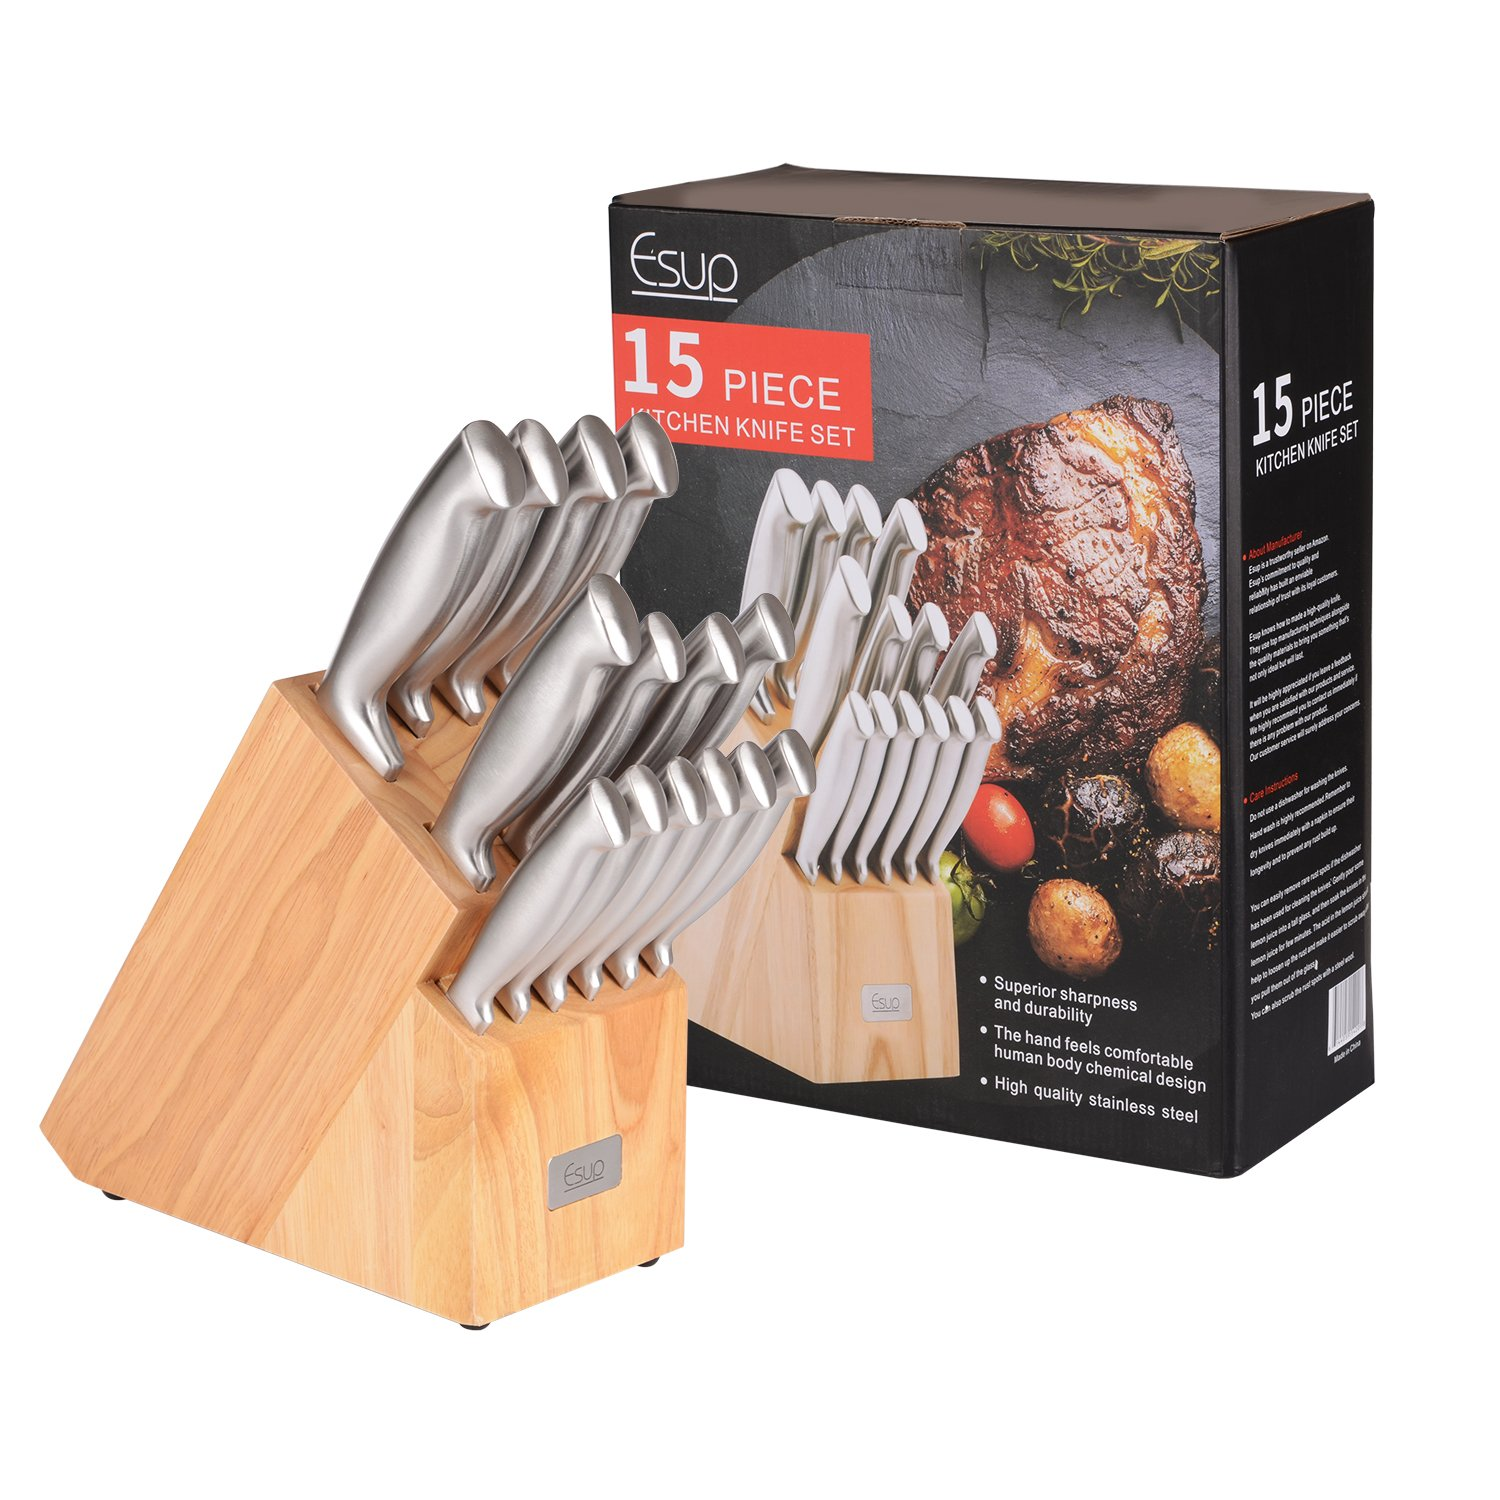 Esup Premium Stainless Steel 15-Piece Knife Block Set, Include Wooden knife Stand(15piece)